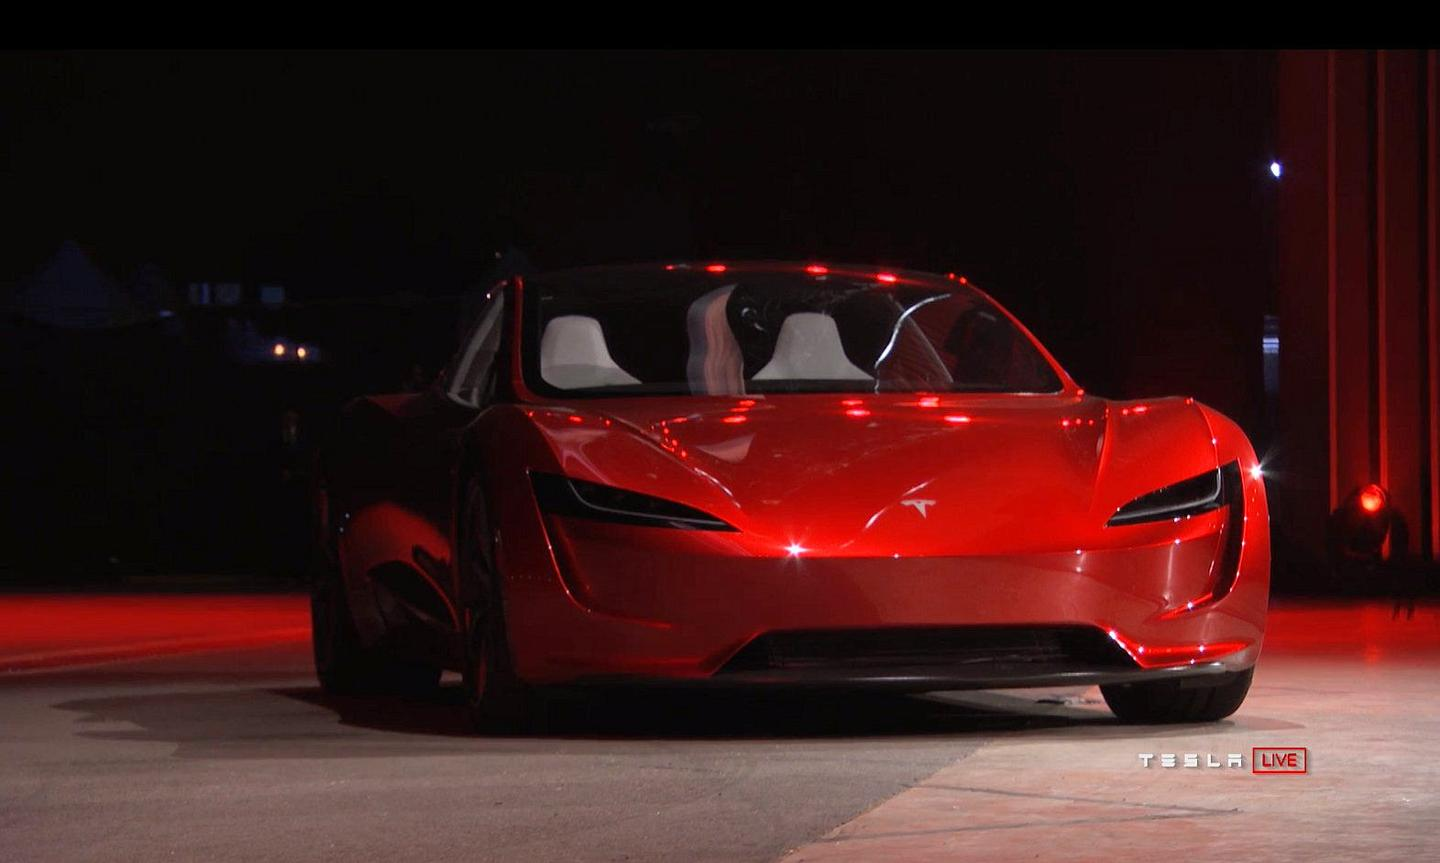 The new Telsa Roadster electric convertible will be a four-seater